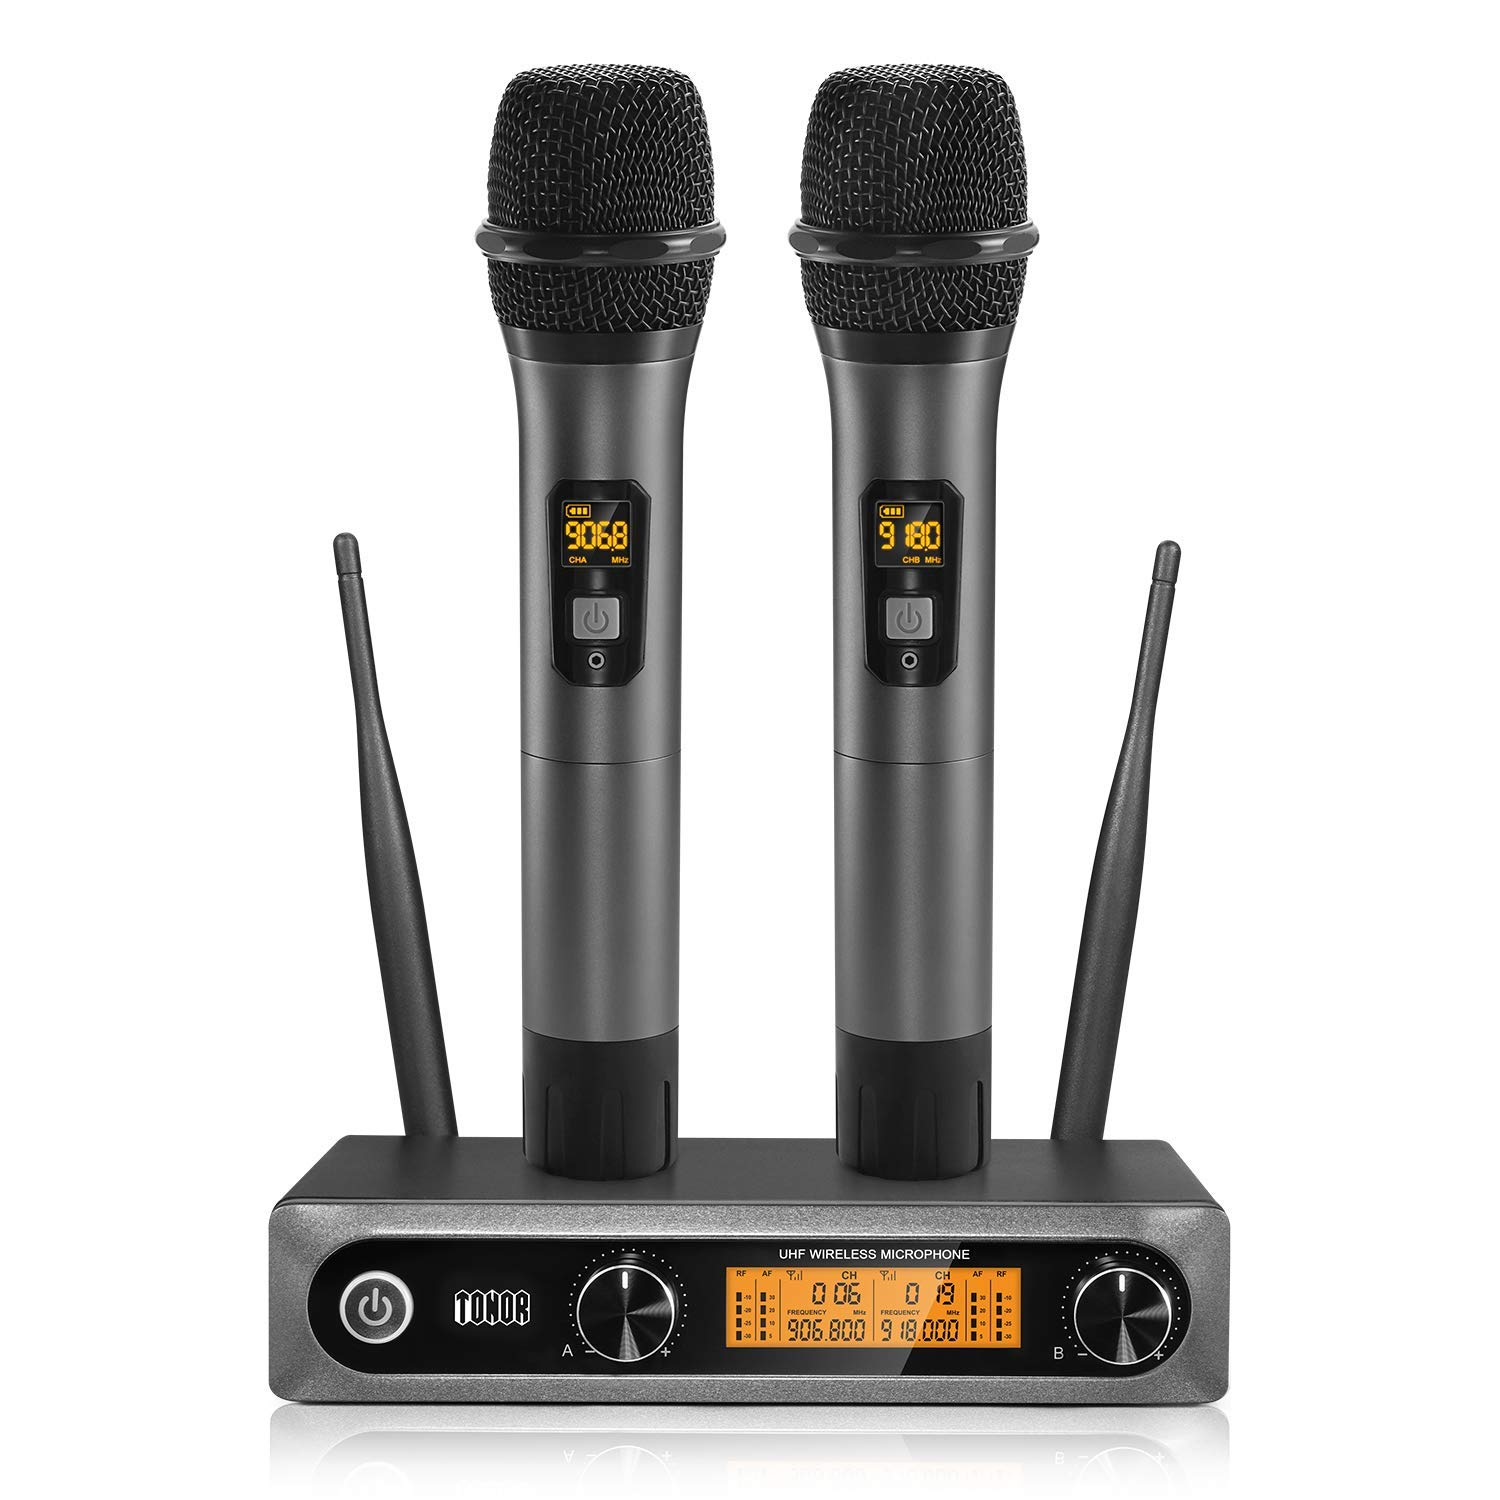 TONOR UHF Wireless Microphone, TW-820 Dual Professional Dynamic Mic Handheld Metal Microphone Set for Karaoke, Party, Church, DJ, Wedding, Meeting, Class Use, 200ft by TONOR